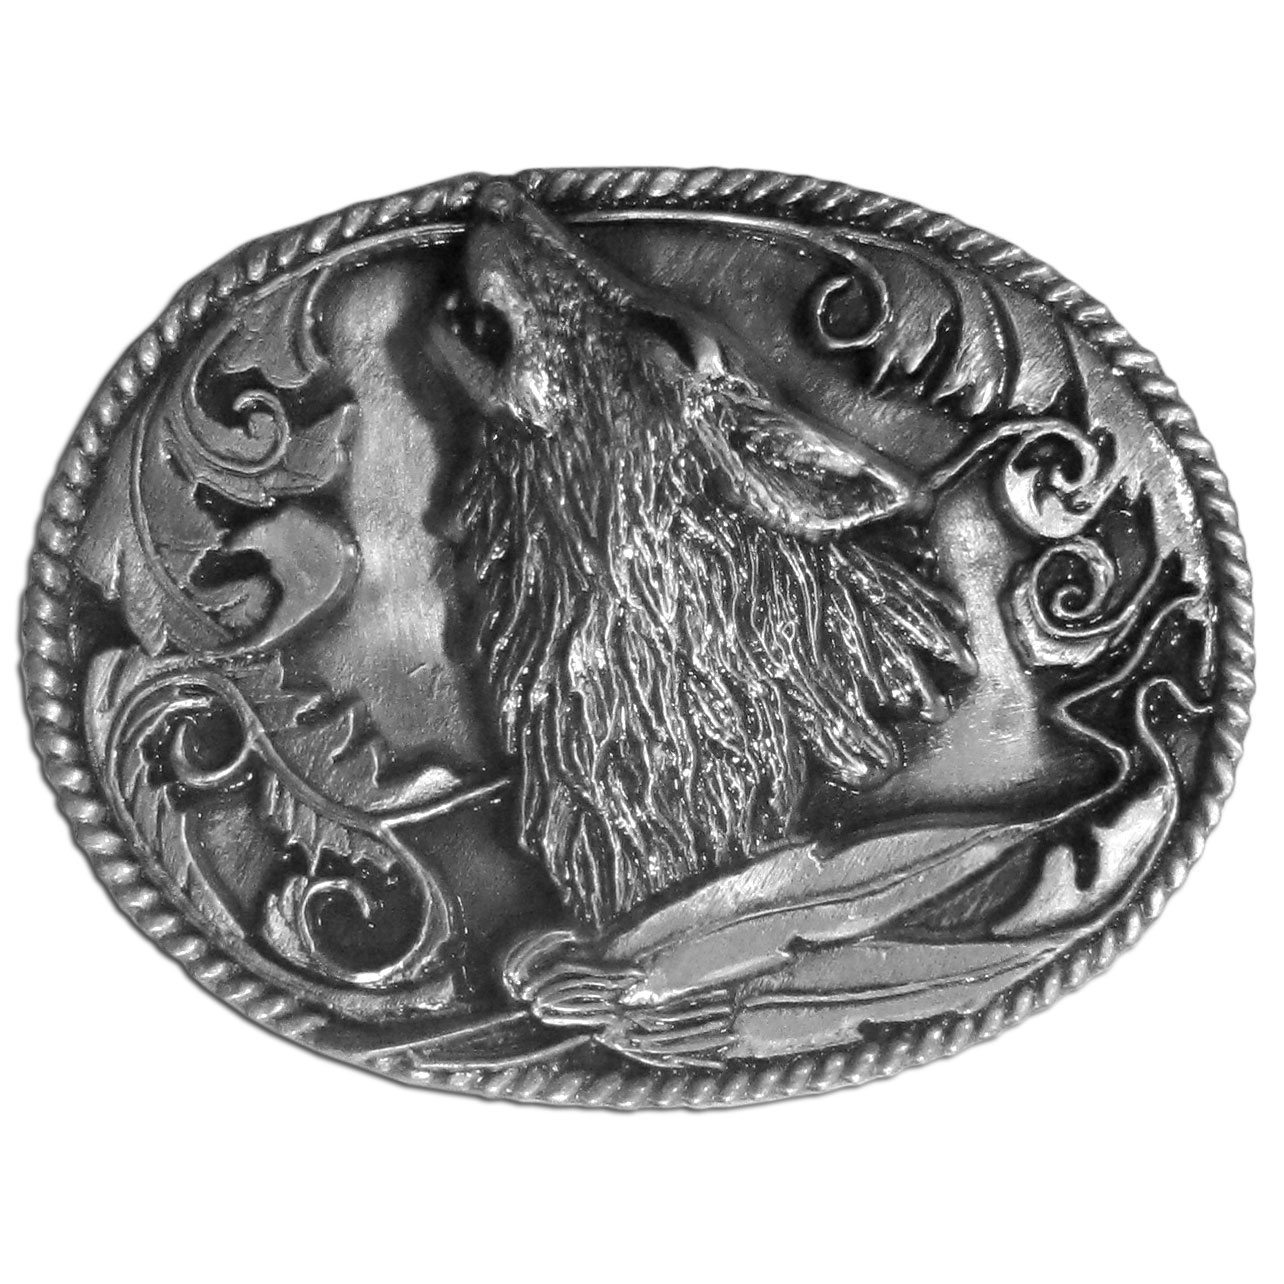 Howling Wolf Antiqued Belt Buckle - Finely sculpted and intricately designed belt buckle features a wolf howling with feathers, Western design detail and rope surrounding it. Our unique designs often become collector's items.